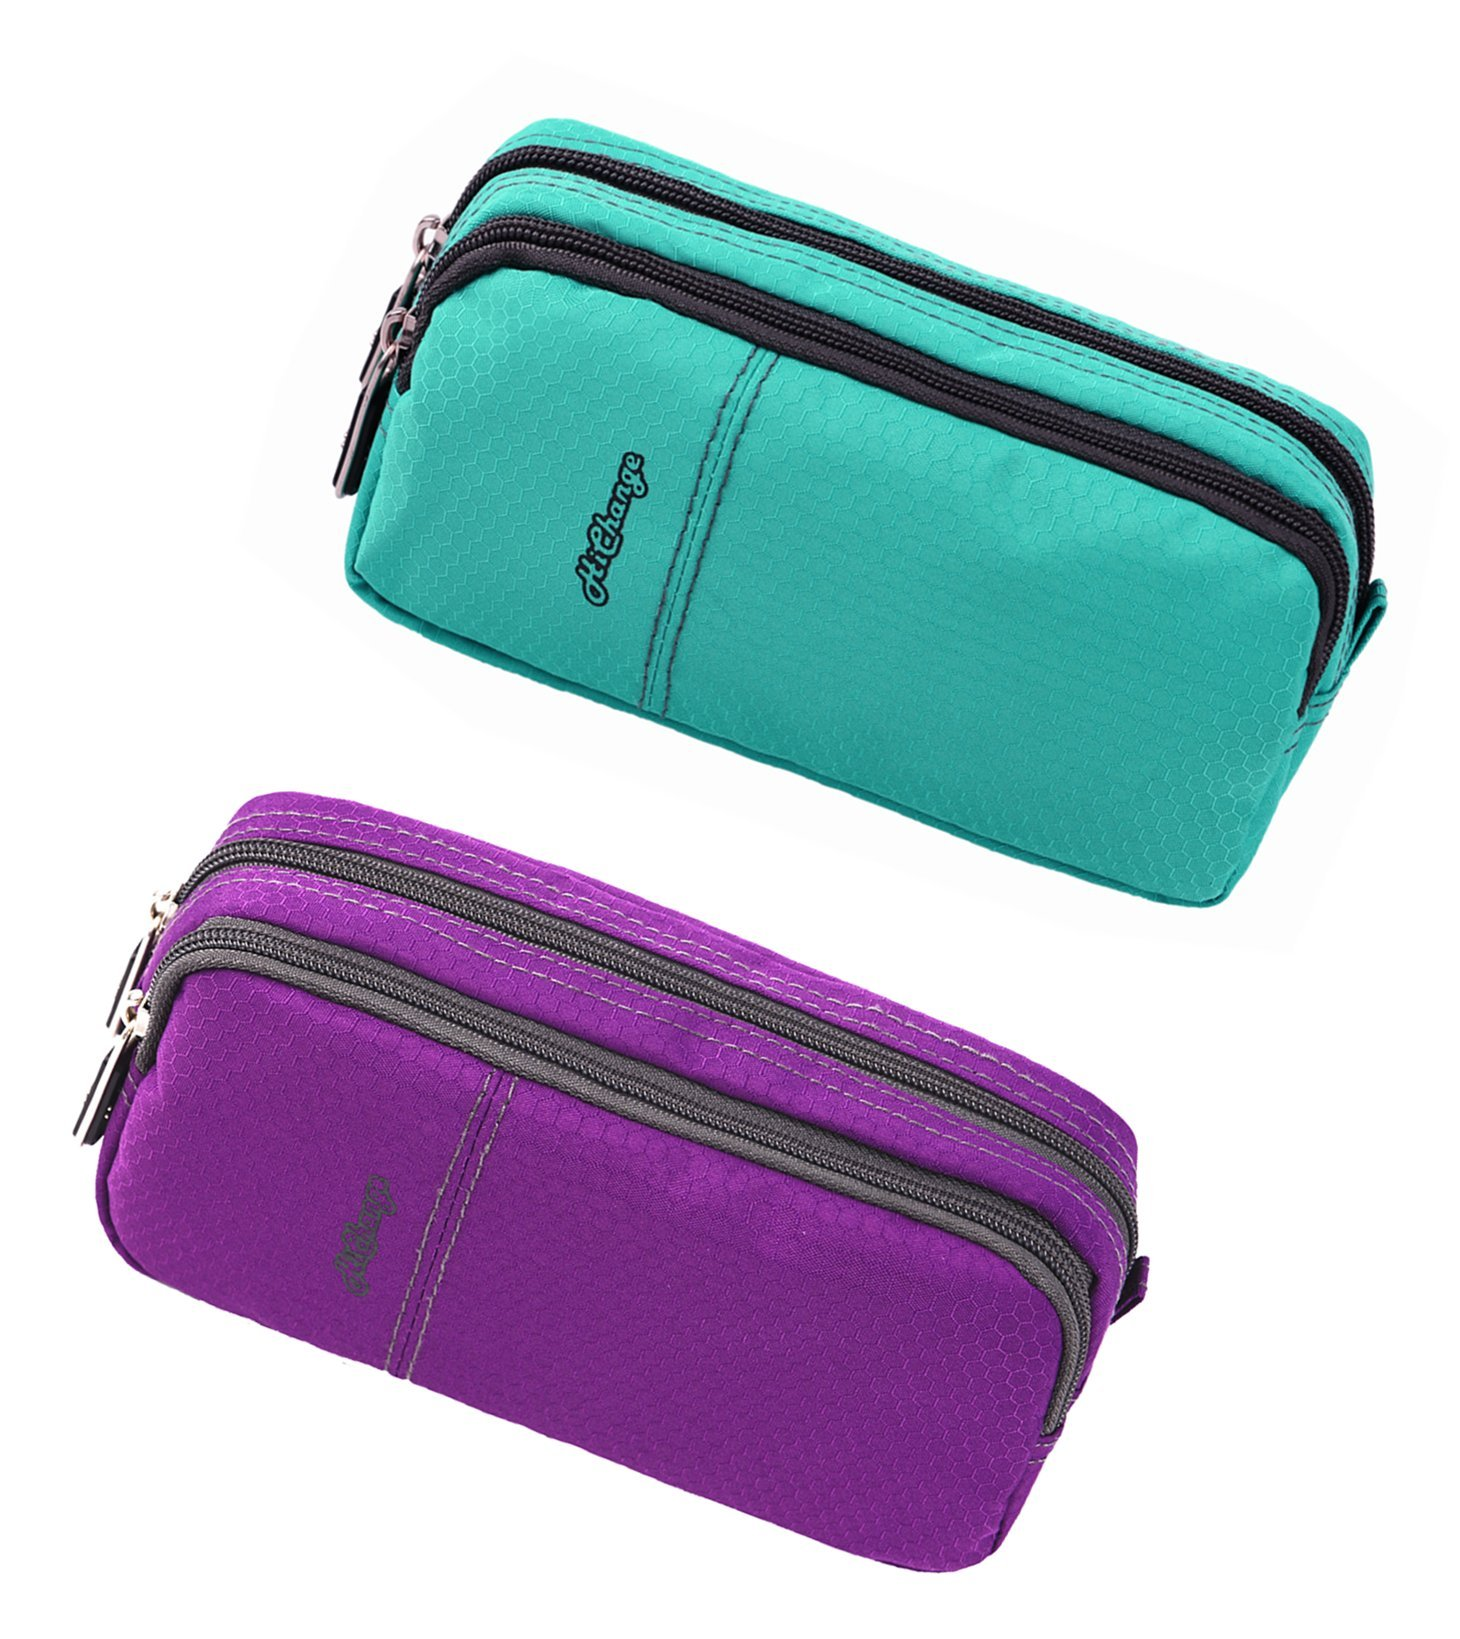 Pencil Case, Big Capacity Pen Case Desk Organizer with Zipper for School & Office Supplies (2Pack Green+Purple)